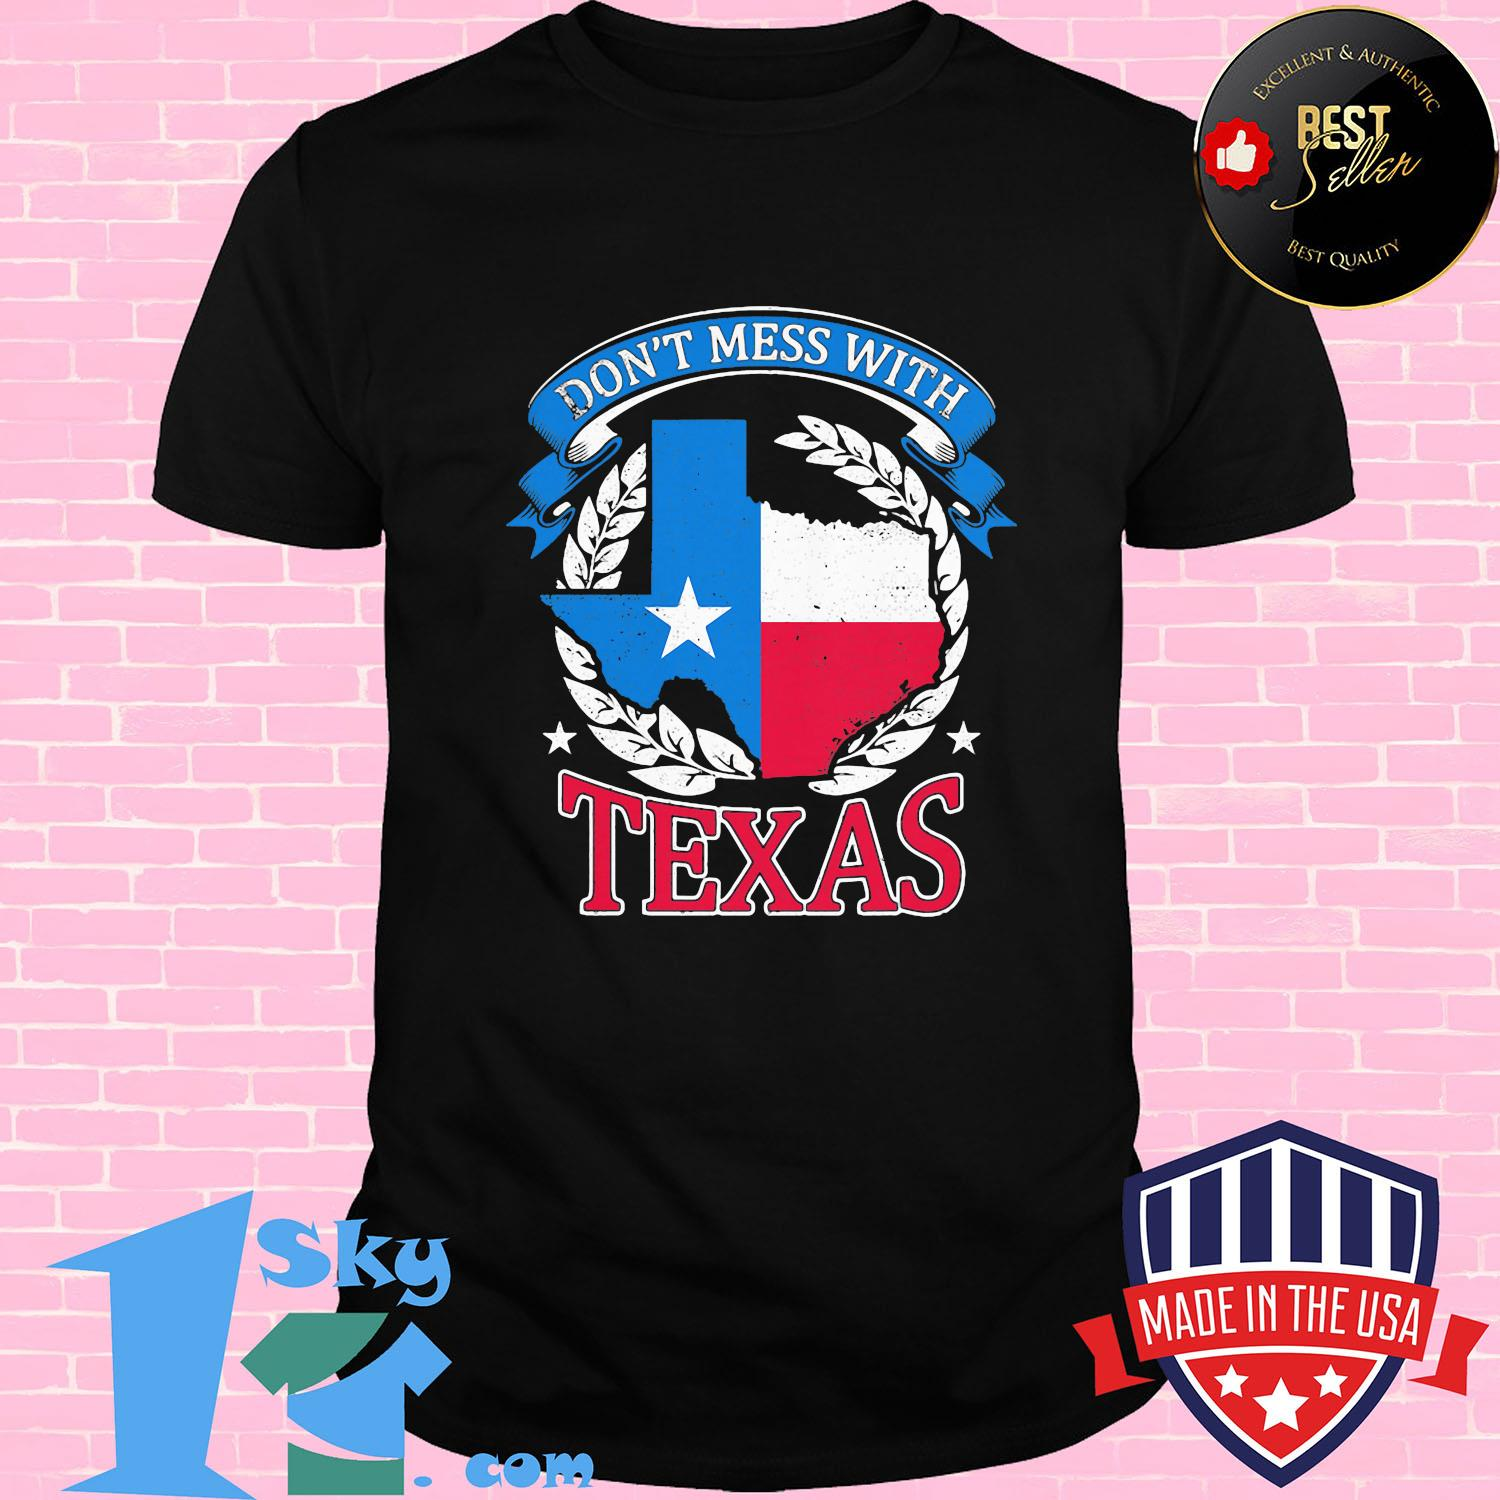 dont mess with texas flag shirt Unisex shirt - Shop trending - We offer all trend shirts - 1SkyTee